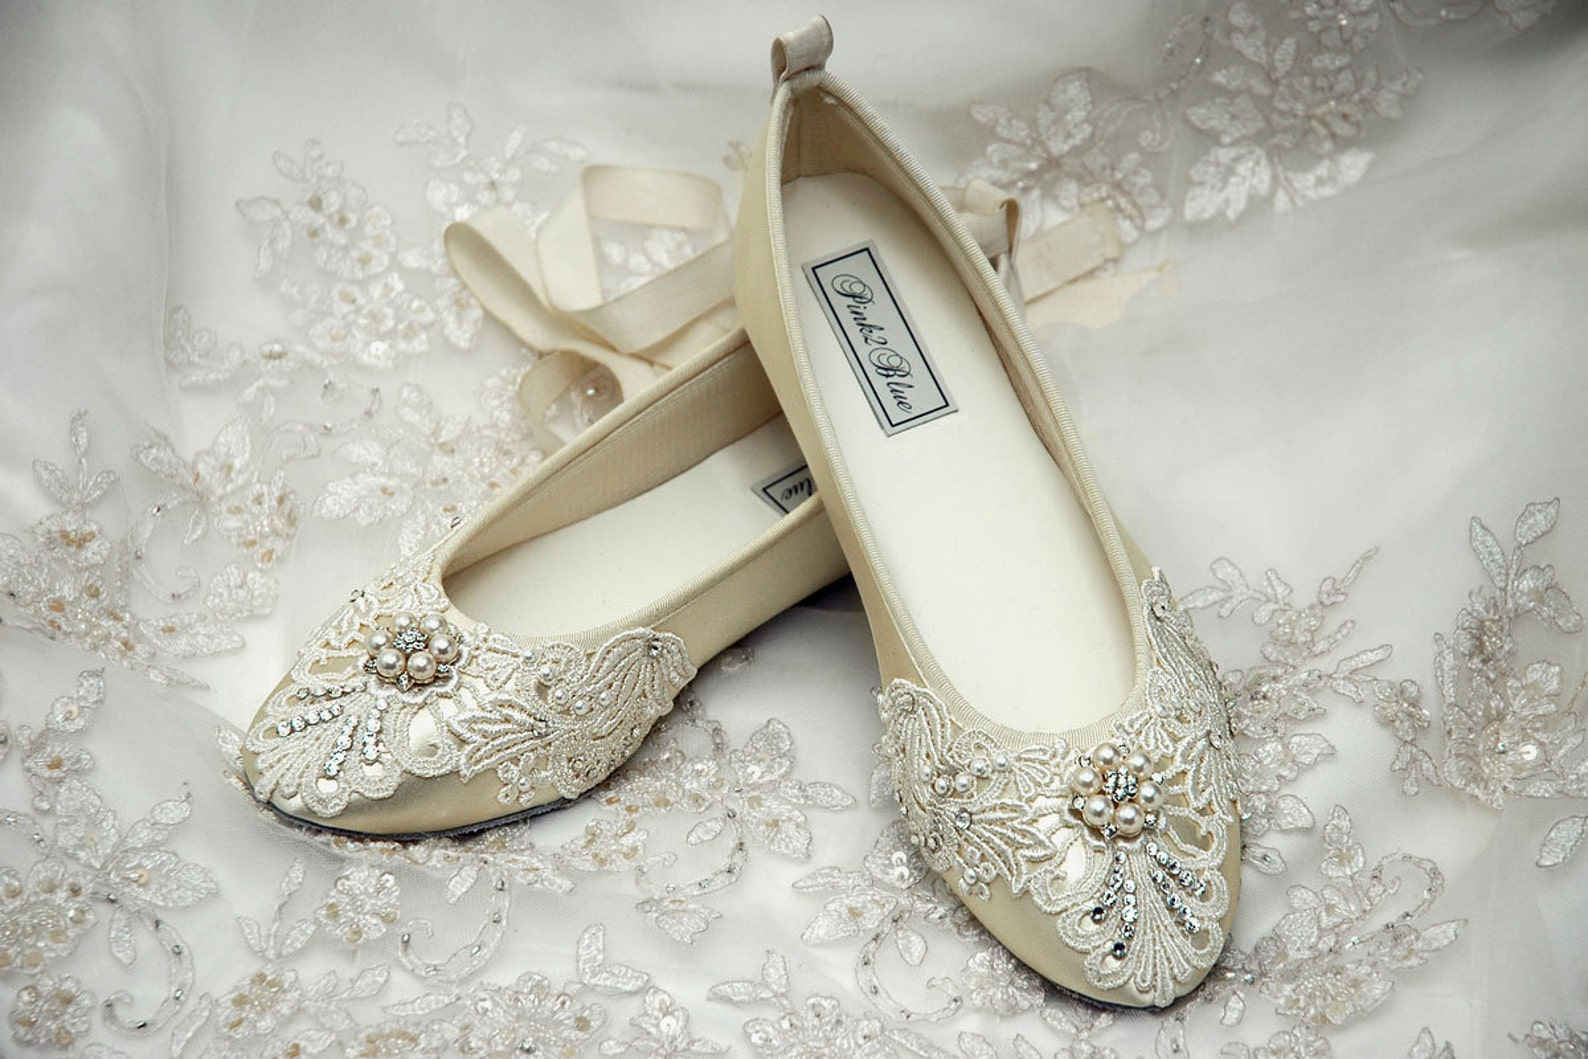 wedding shoes-free custom colors, womens comfort bridal ballet flats vintage lace embellished shoes bridesmaid maid of honor mot